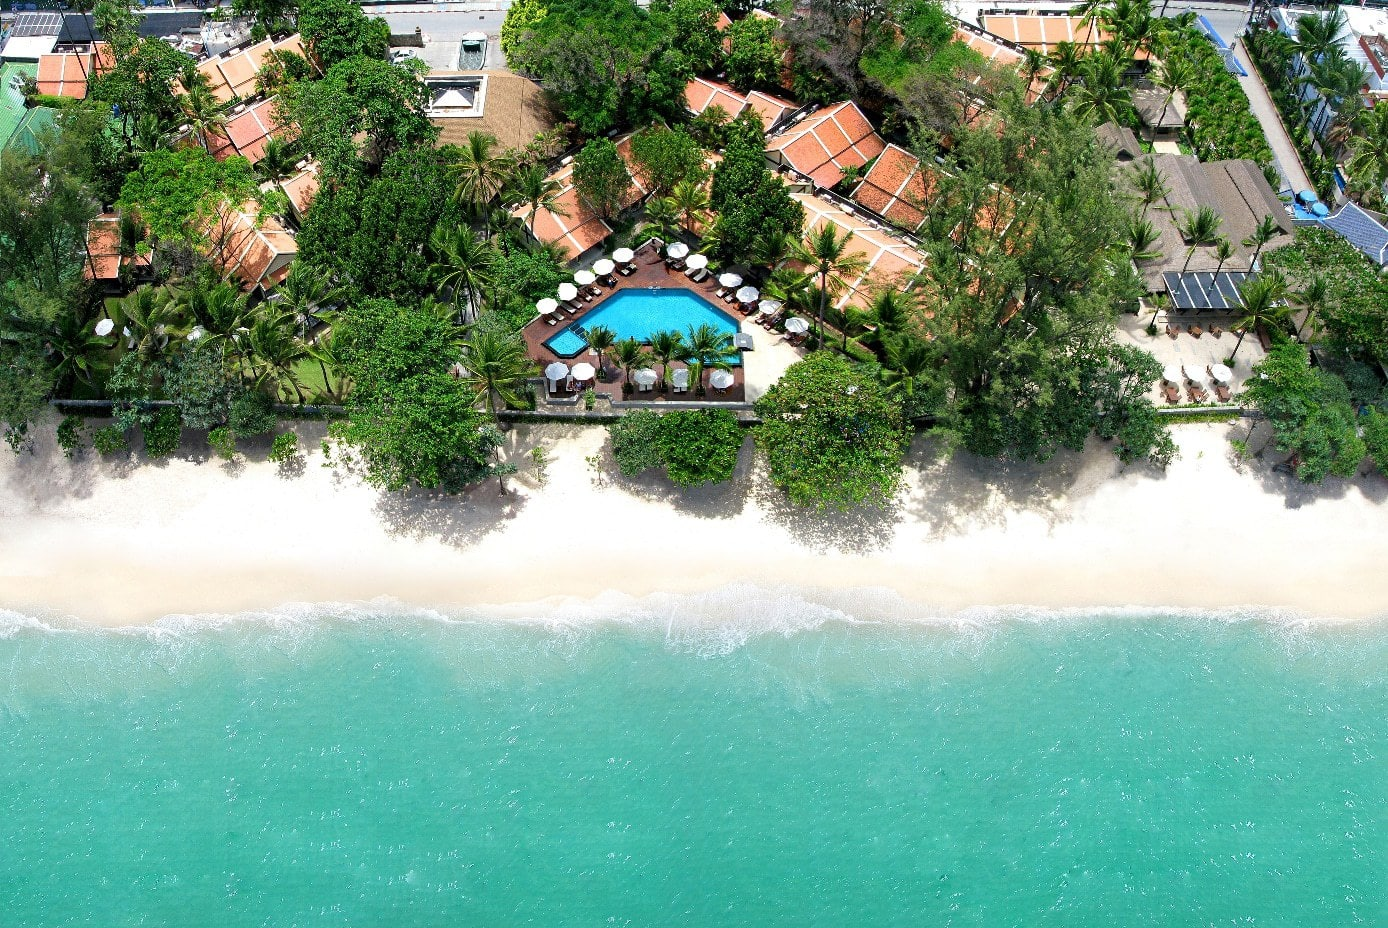 Best Place To Stay In Phuket On The Beach